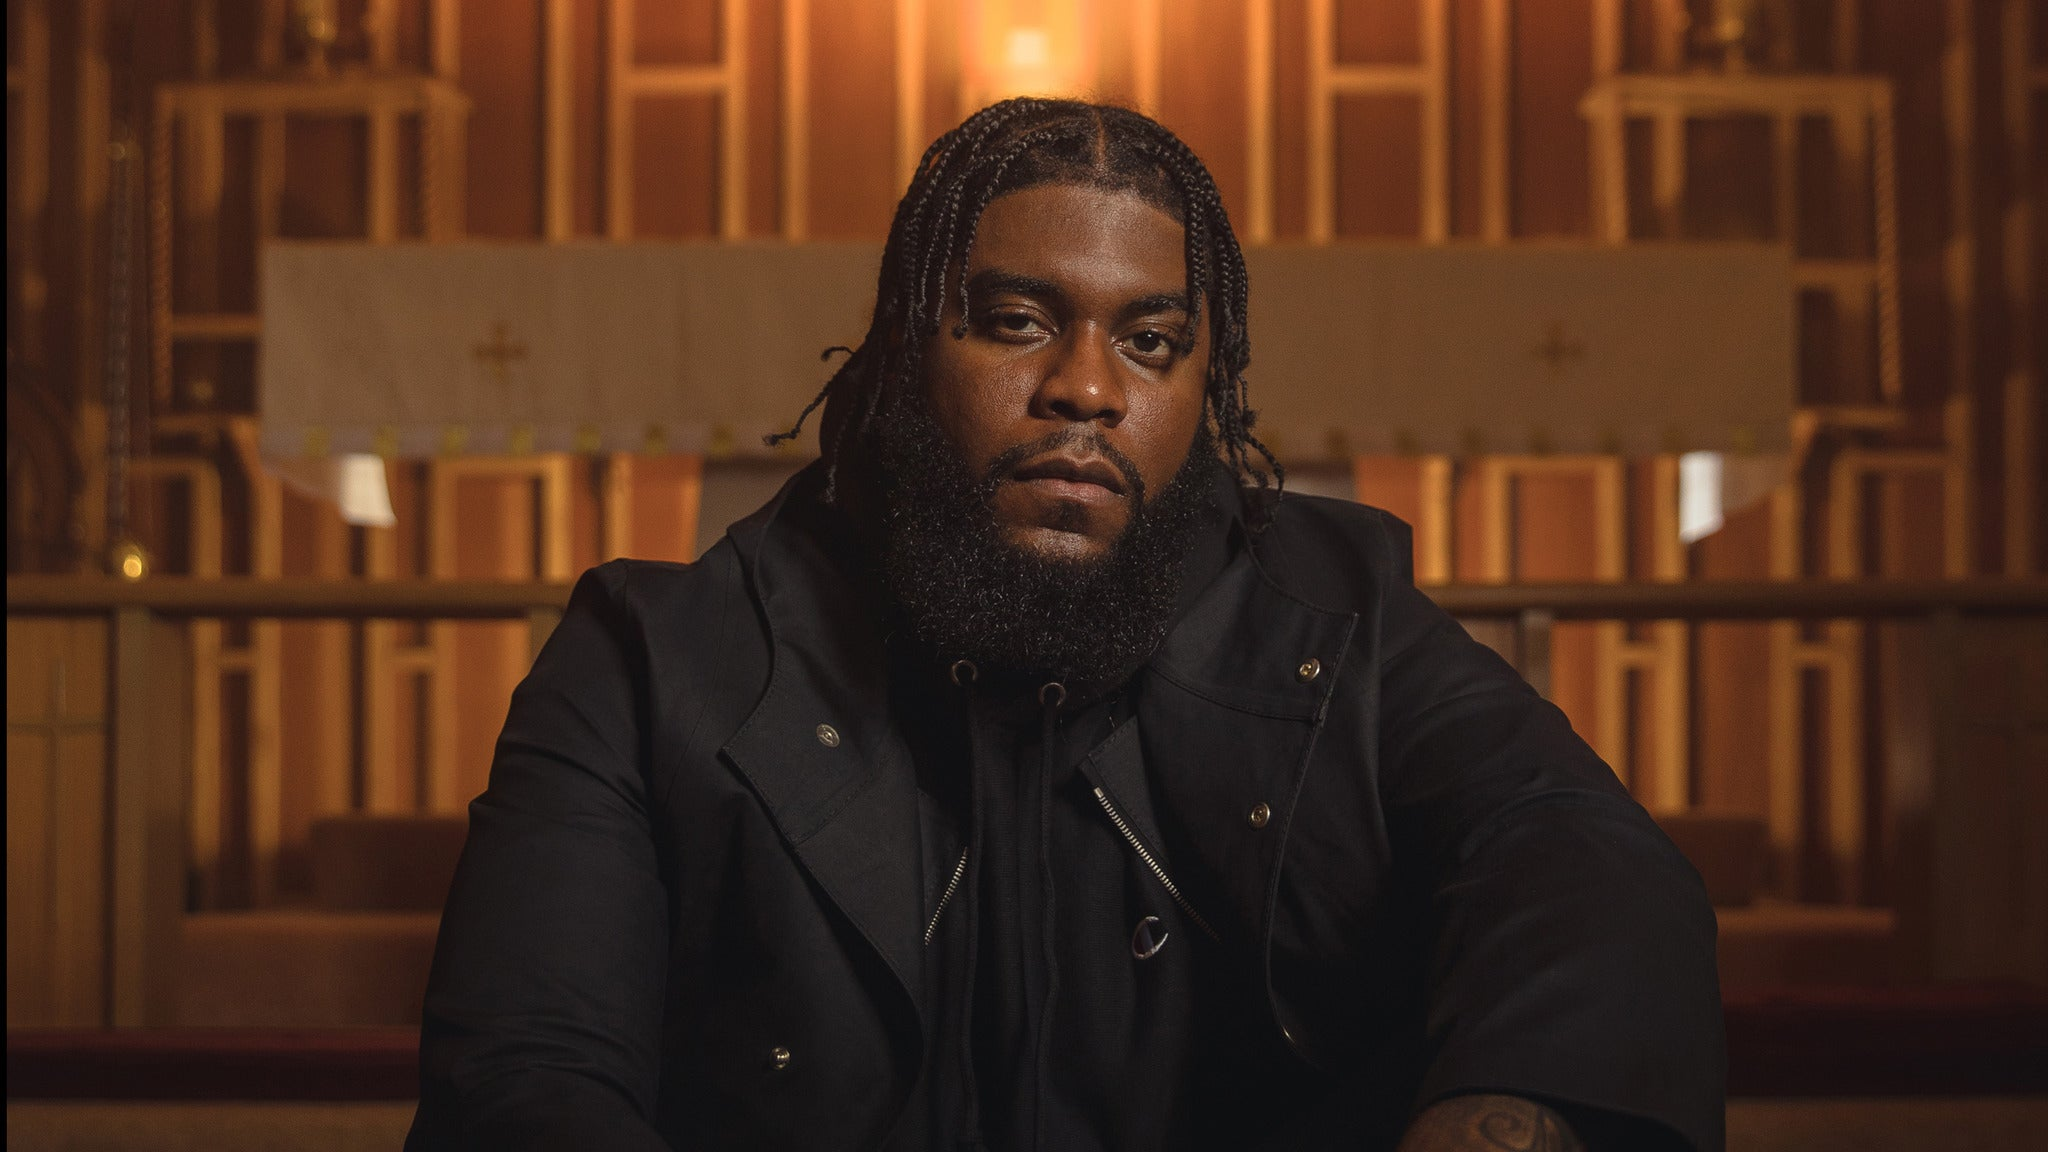 Big K.R.I.T. at Minglewood Hall